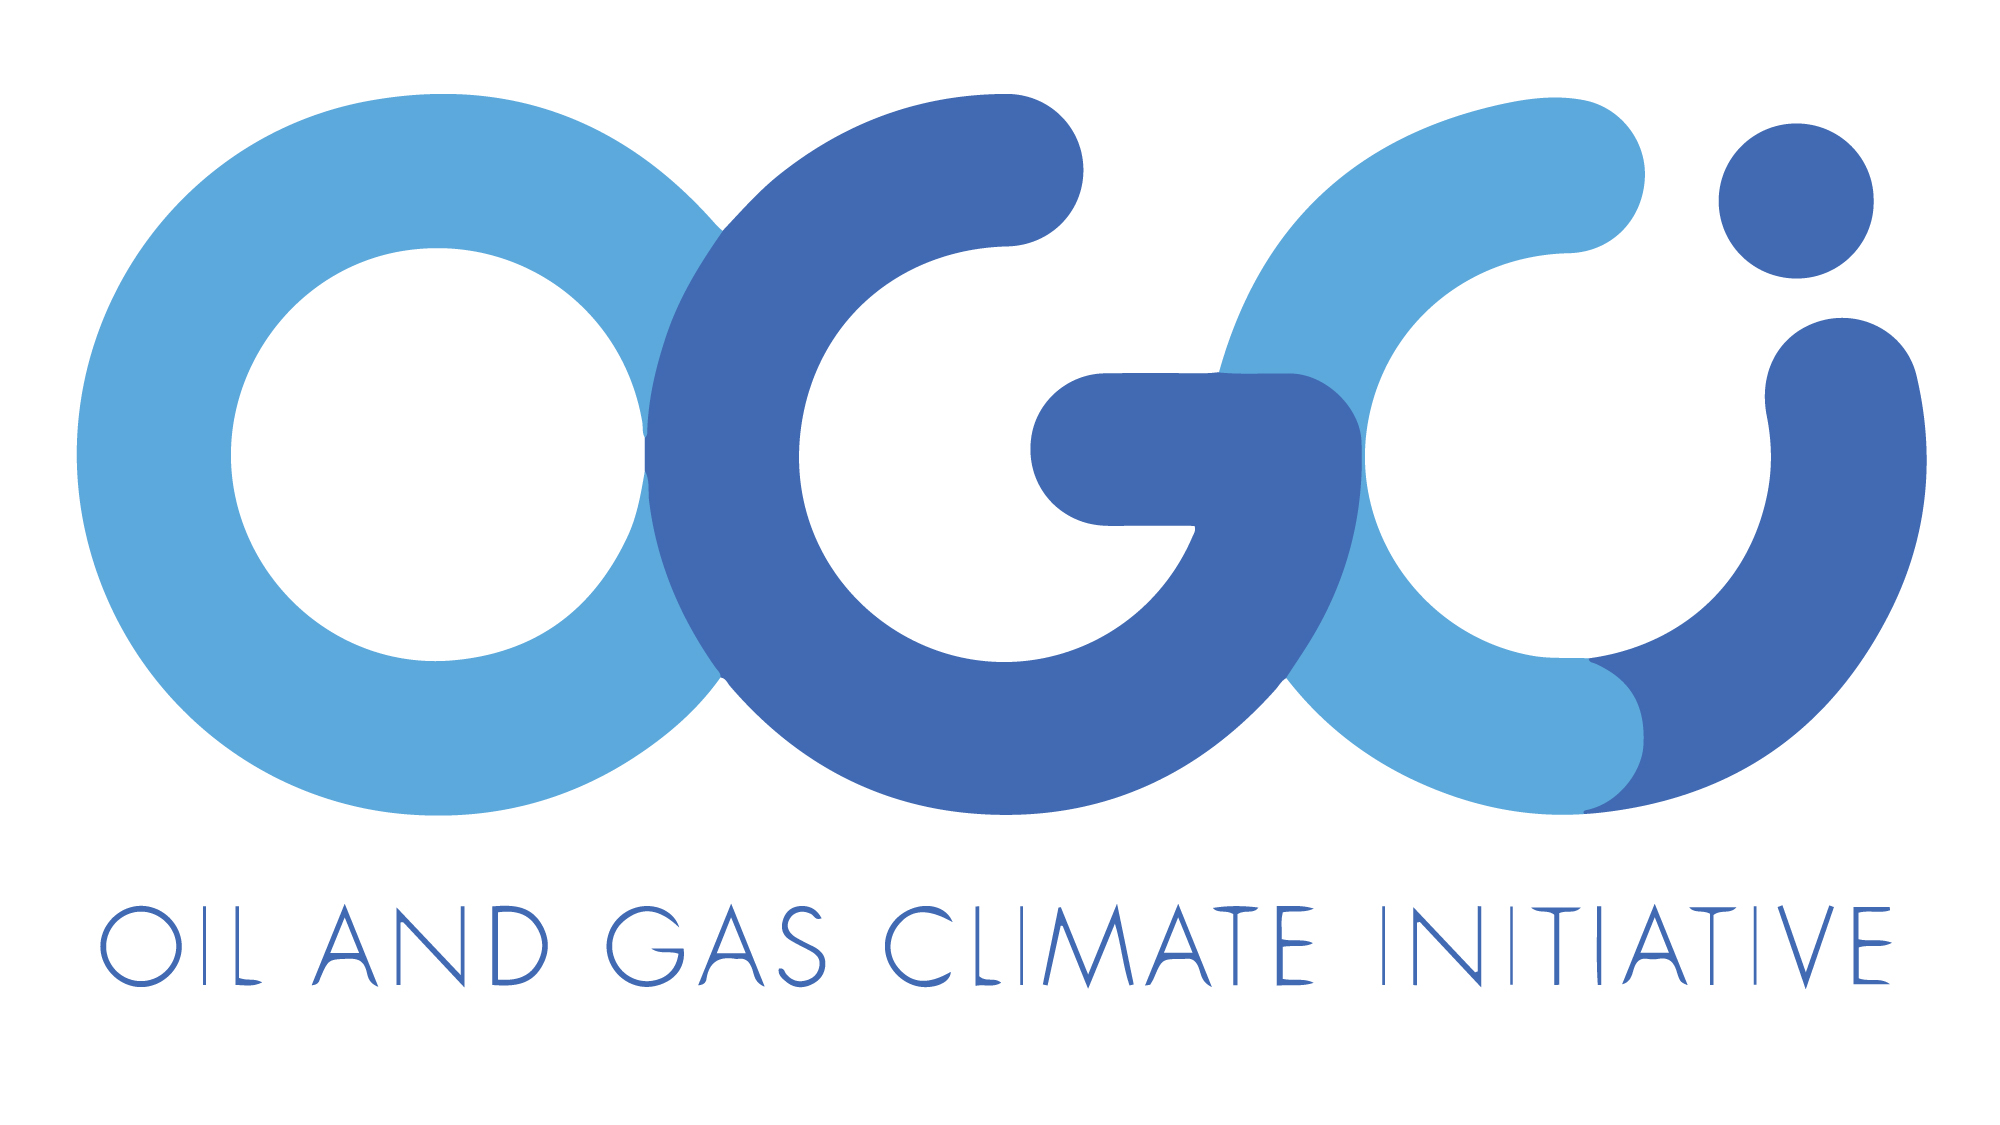 Oil and Gas Climate Initiative